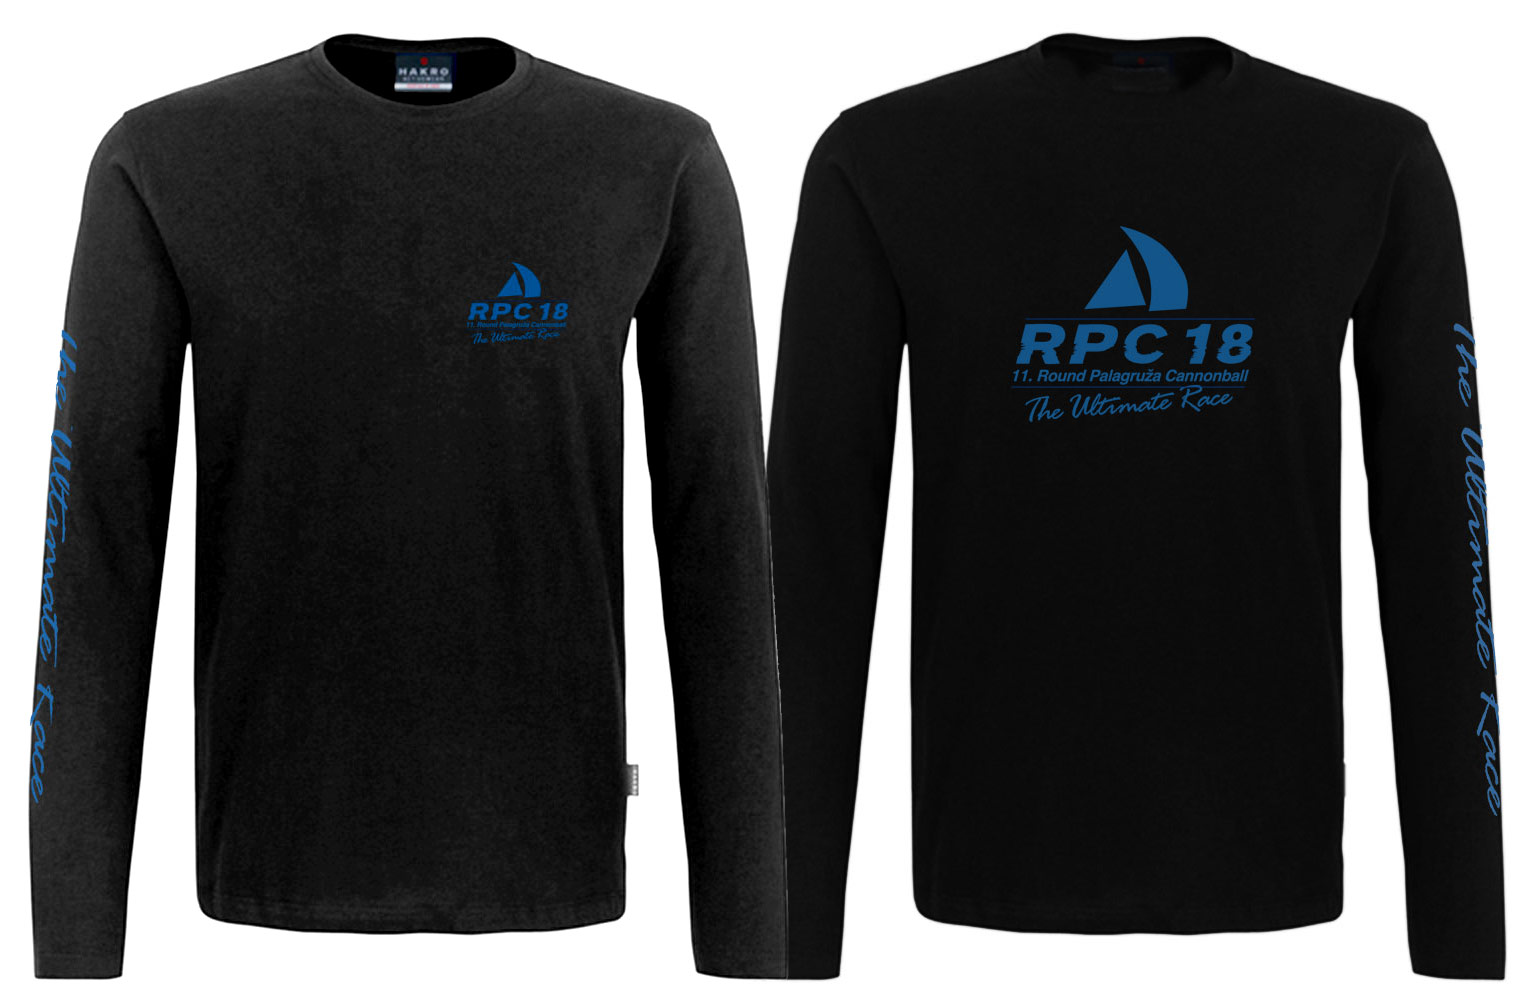 T-Shirts RPC 2018 – Workline - Andreas Malak GmbH